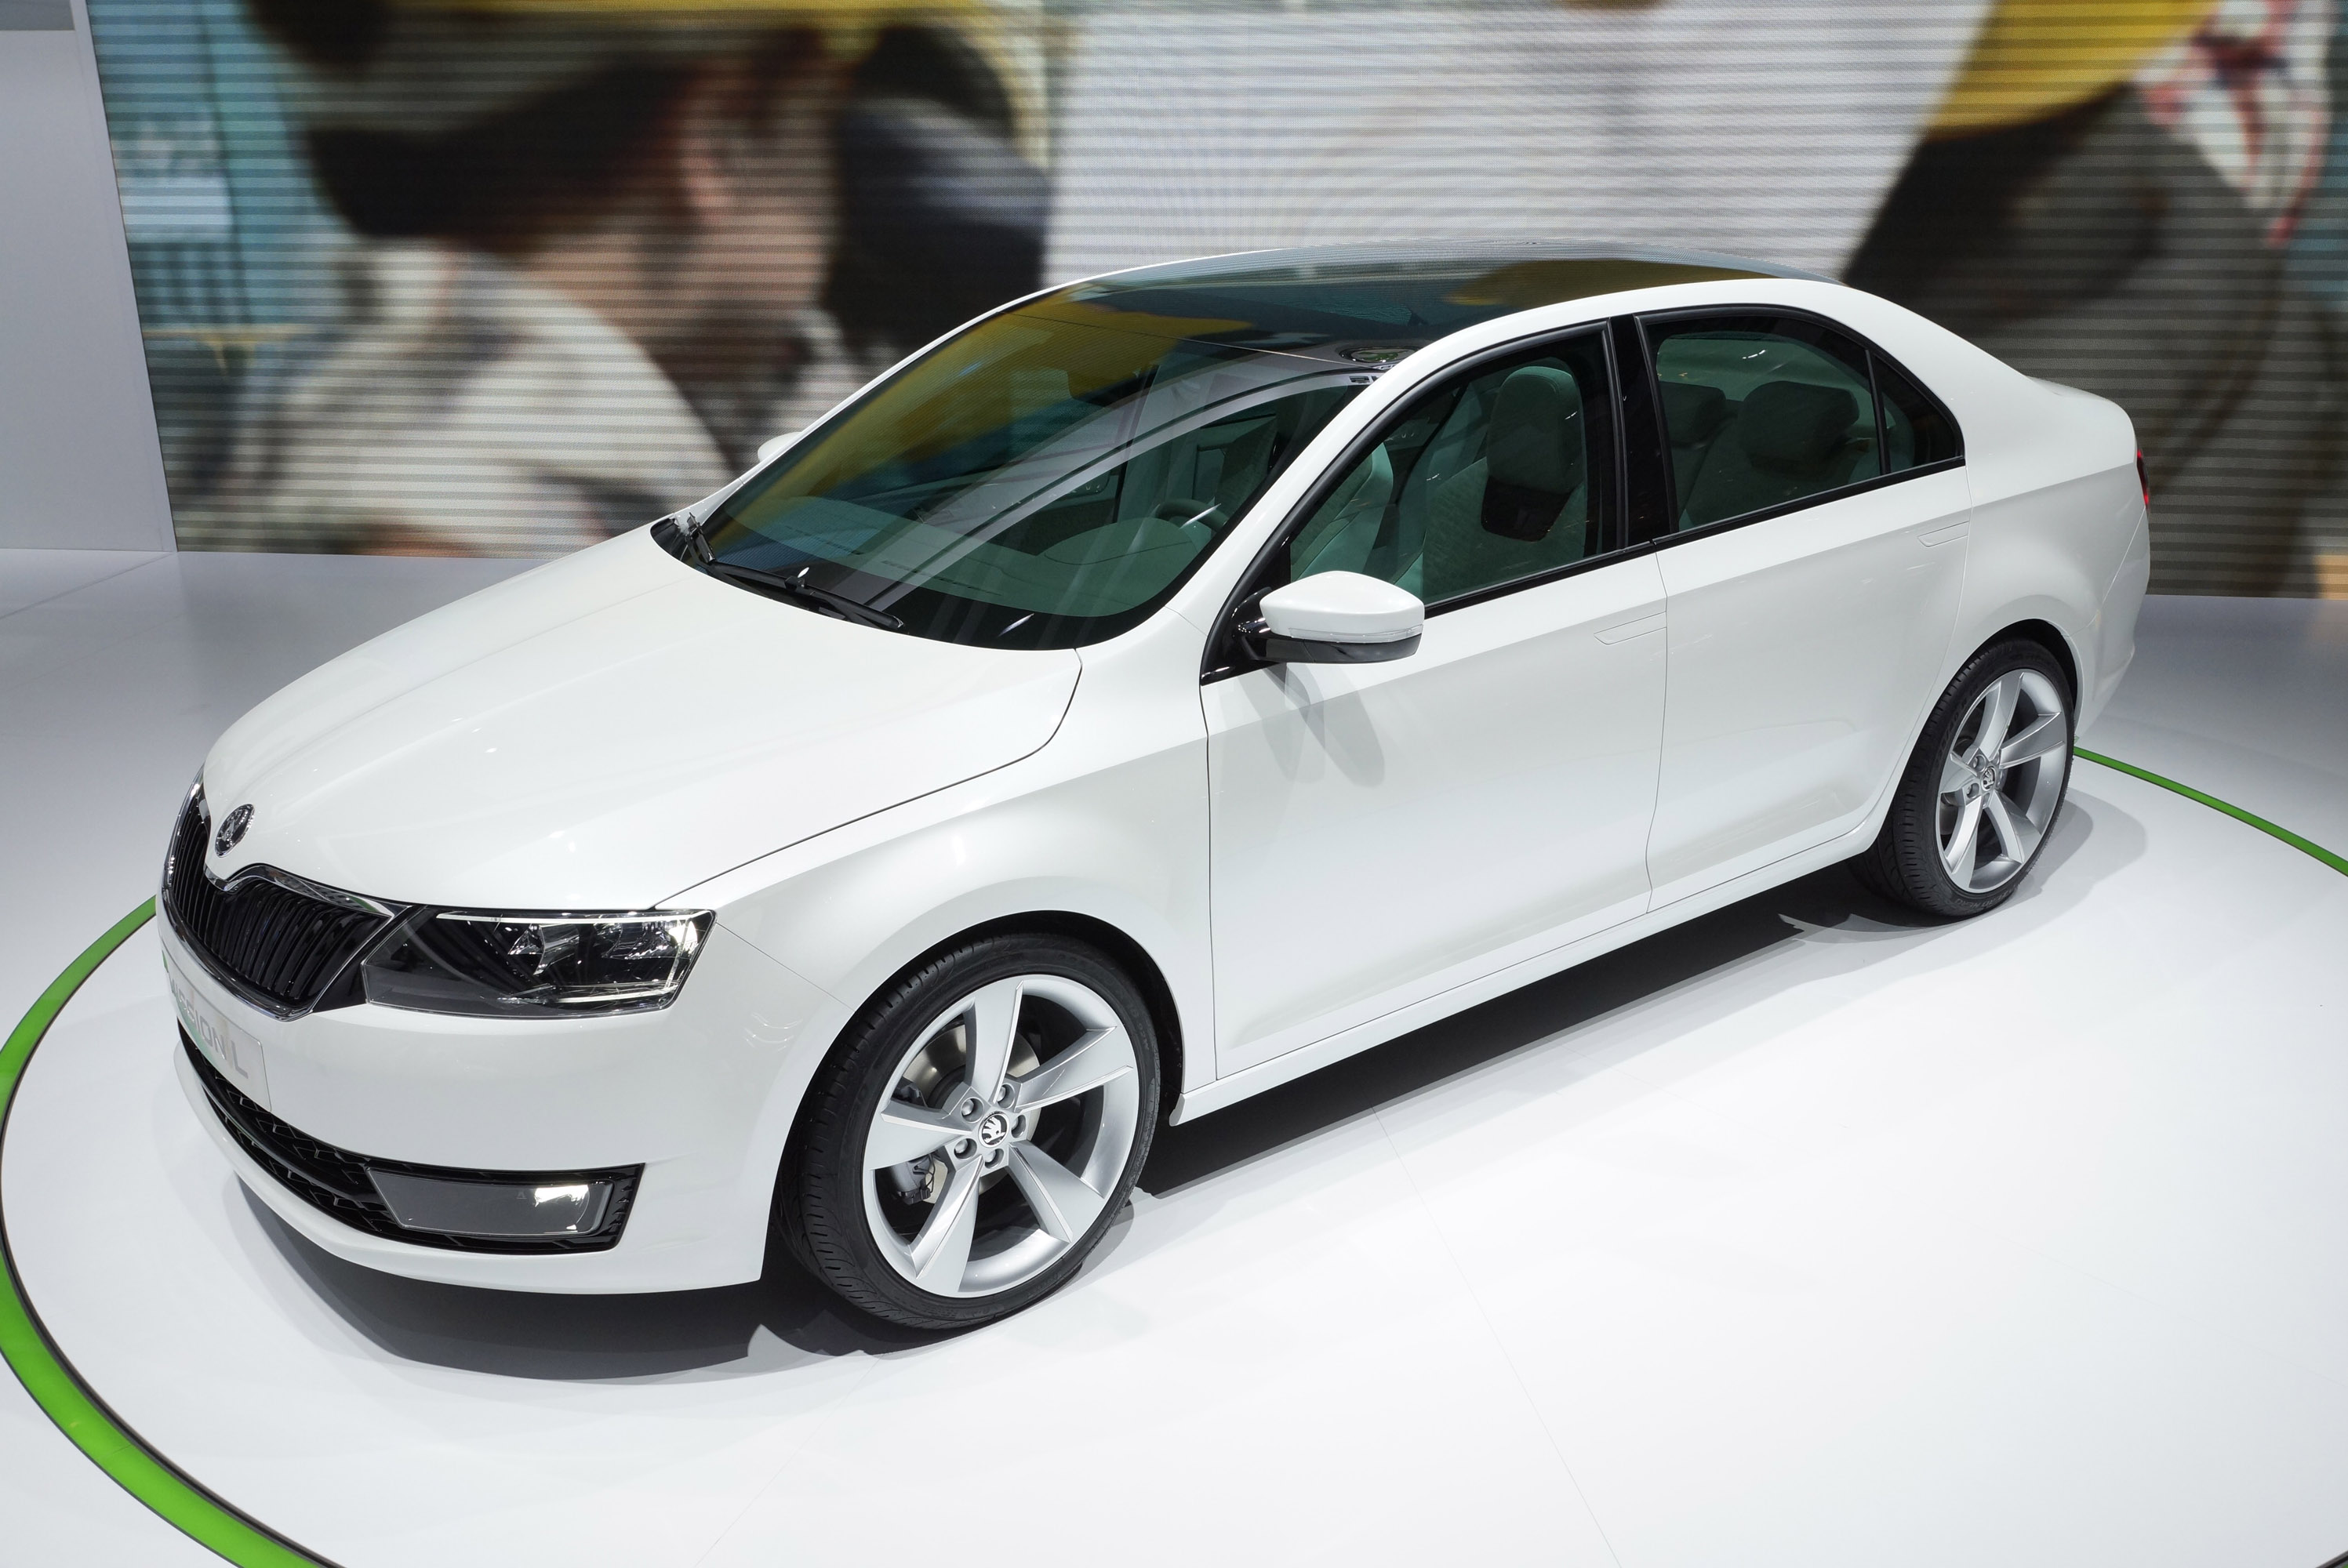 skoda missionl concept targets qatar motor show. Black Bedroom Furniture Sets. Home Design Ideas